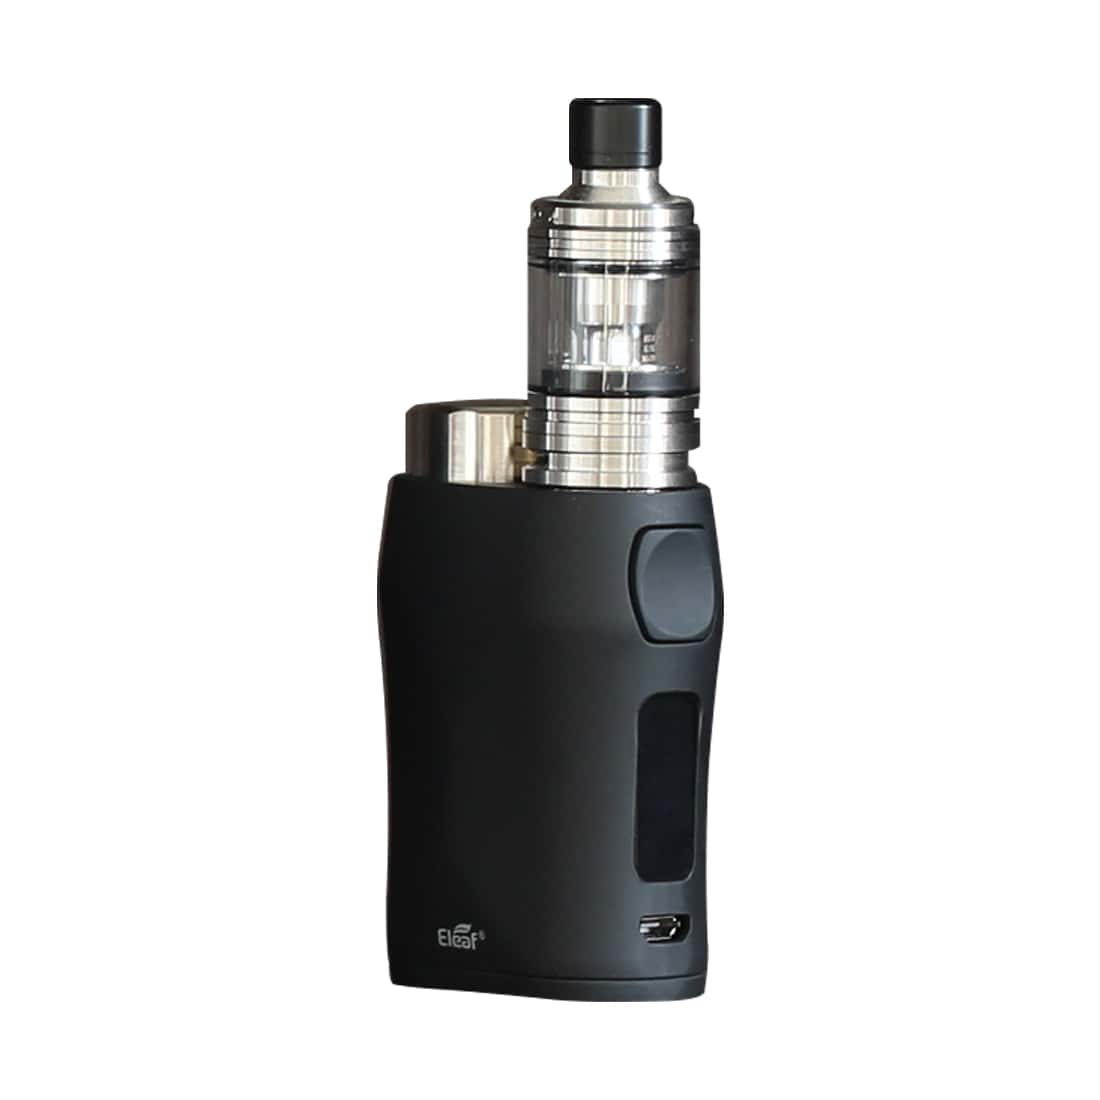 Photo de Cigarette electronique Eleaf iStick Pico X Noire